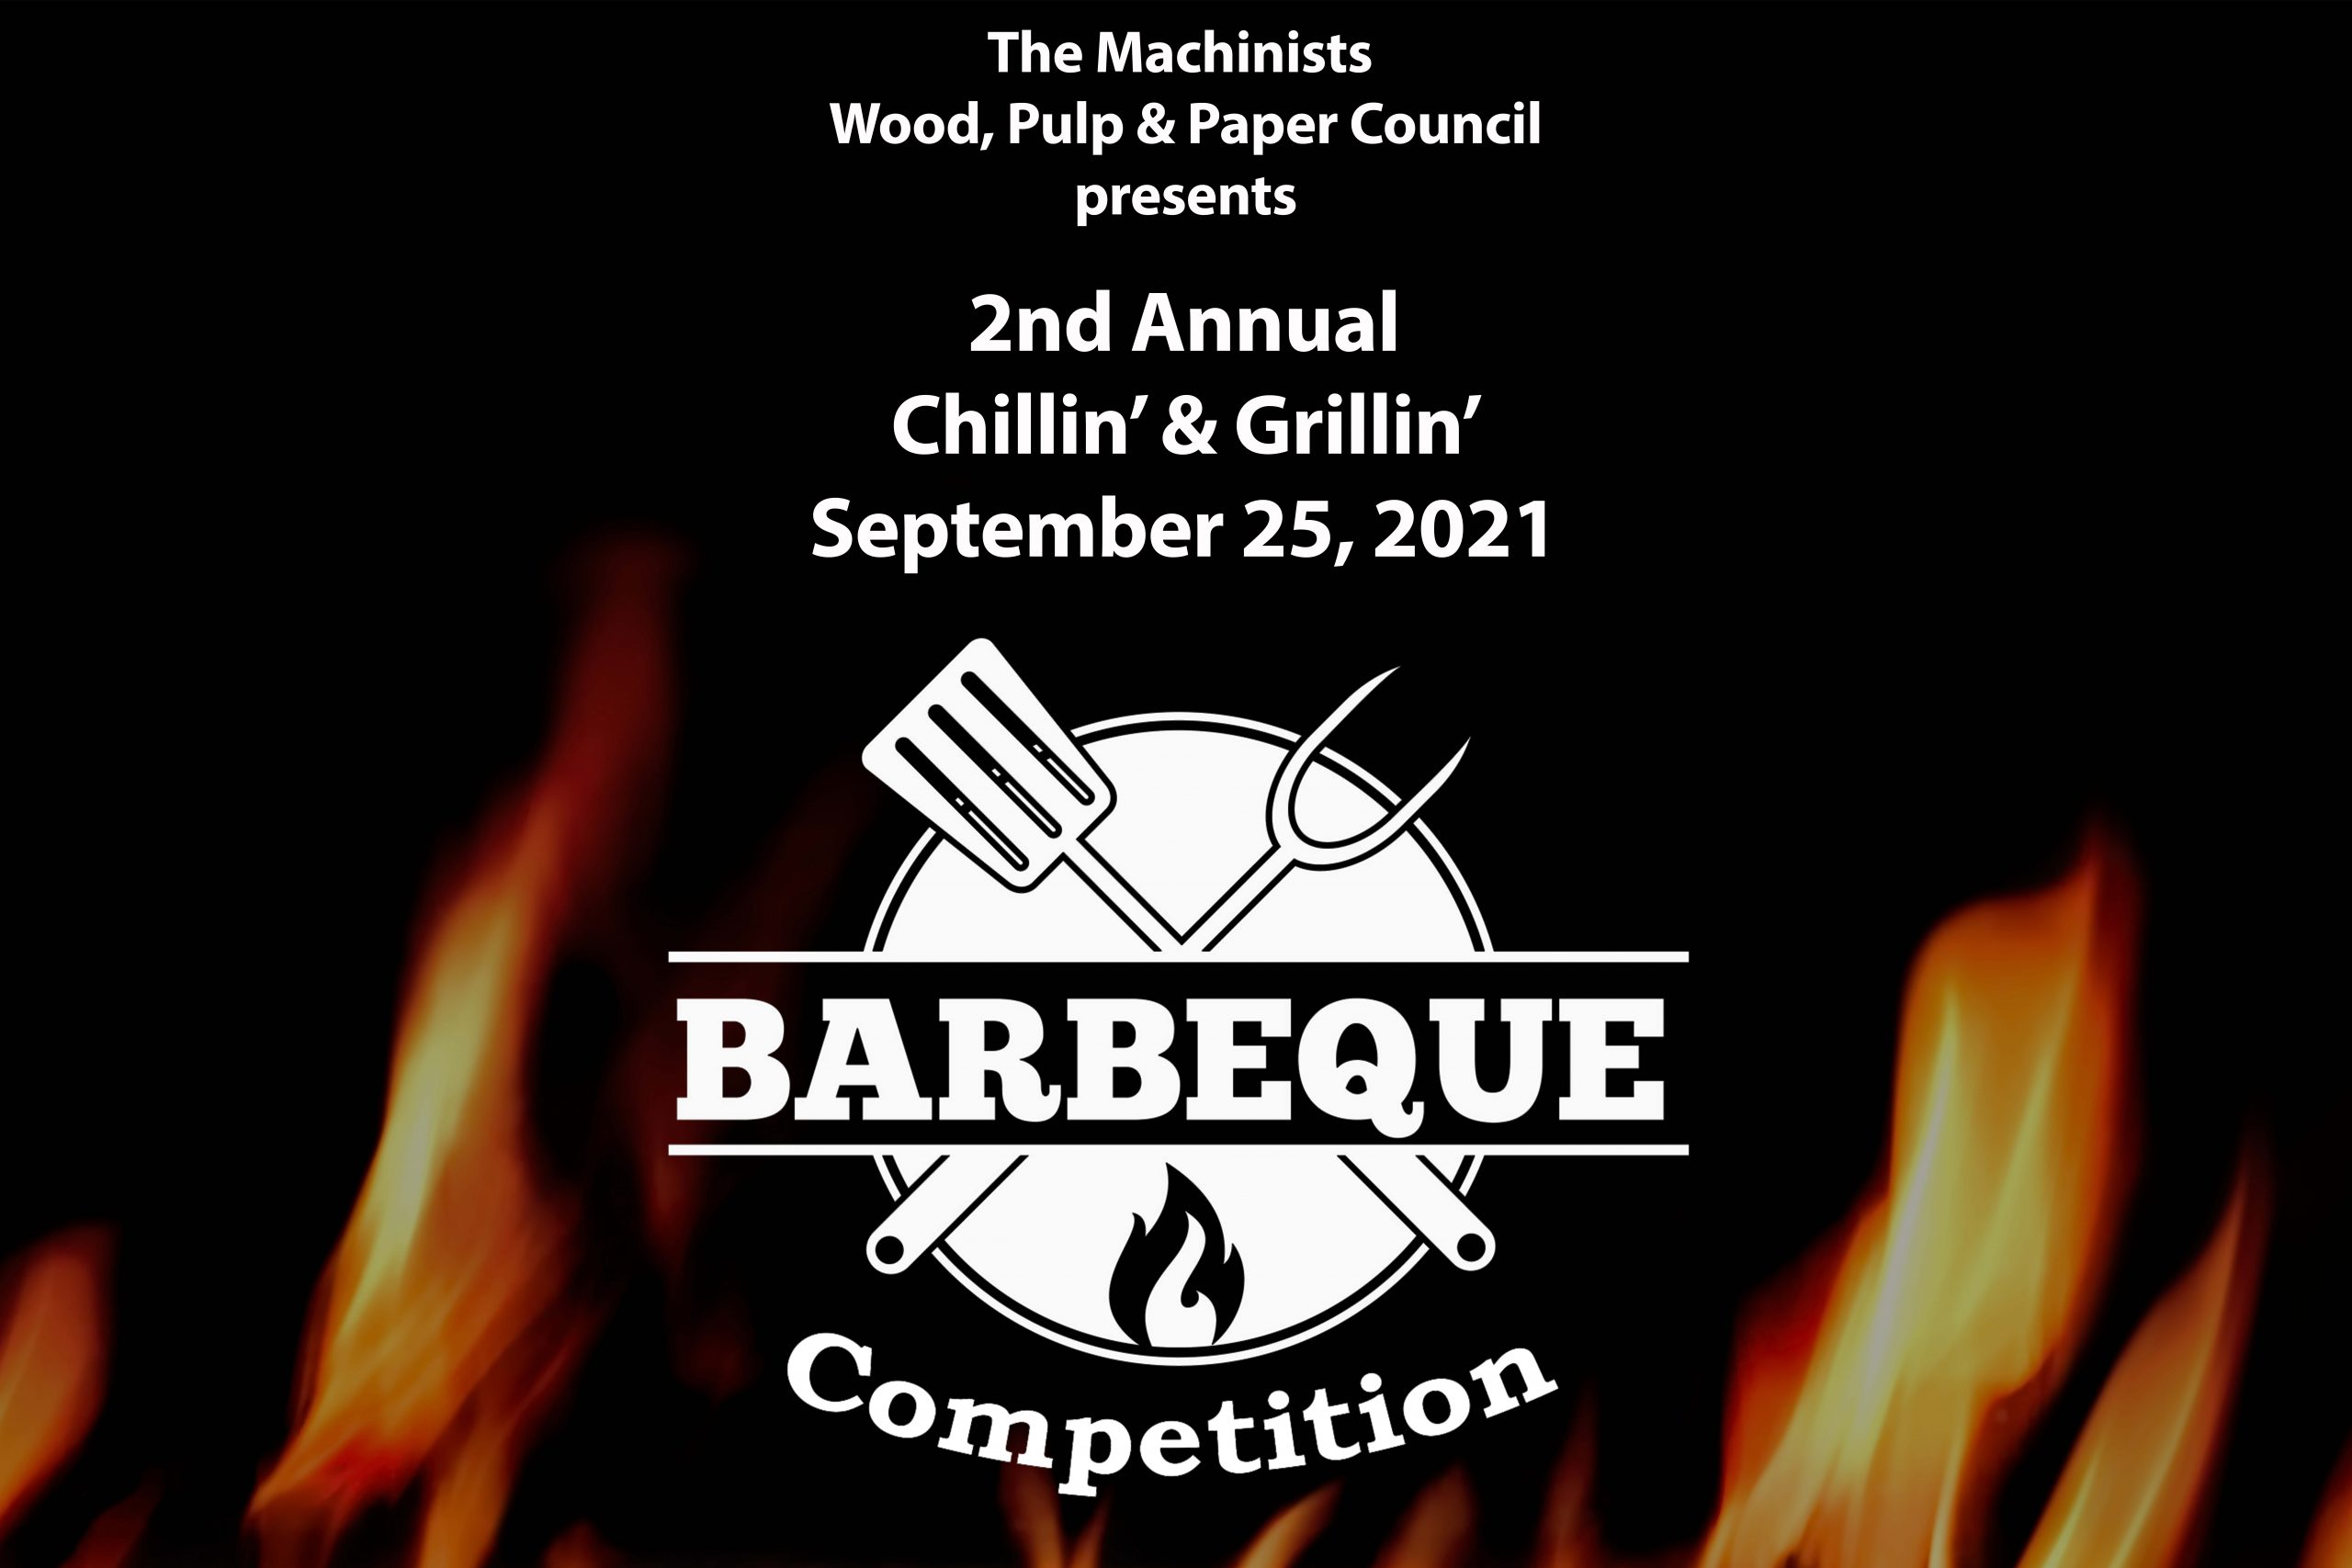 Machinists Wood, Pulp and Paper Council Holding 2nd Annual Virtual BBQ Competition